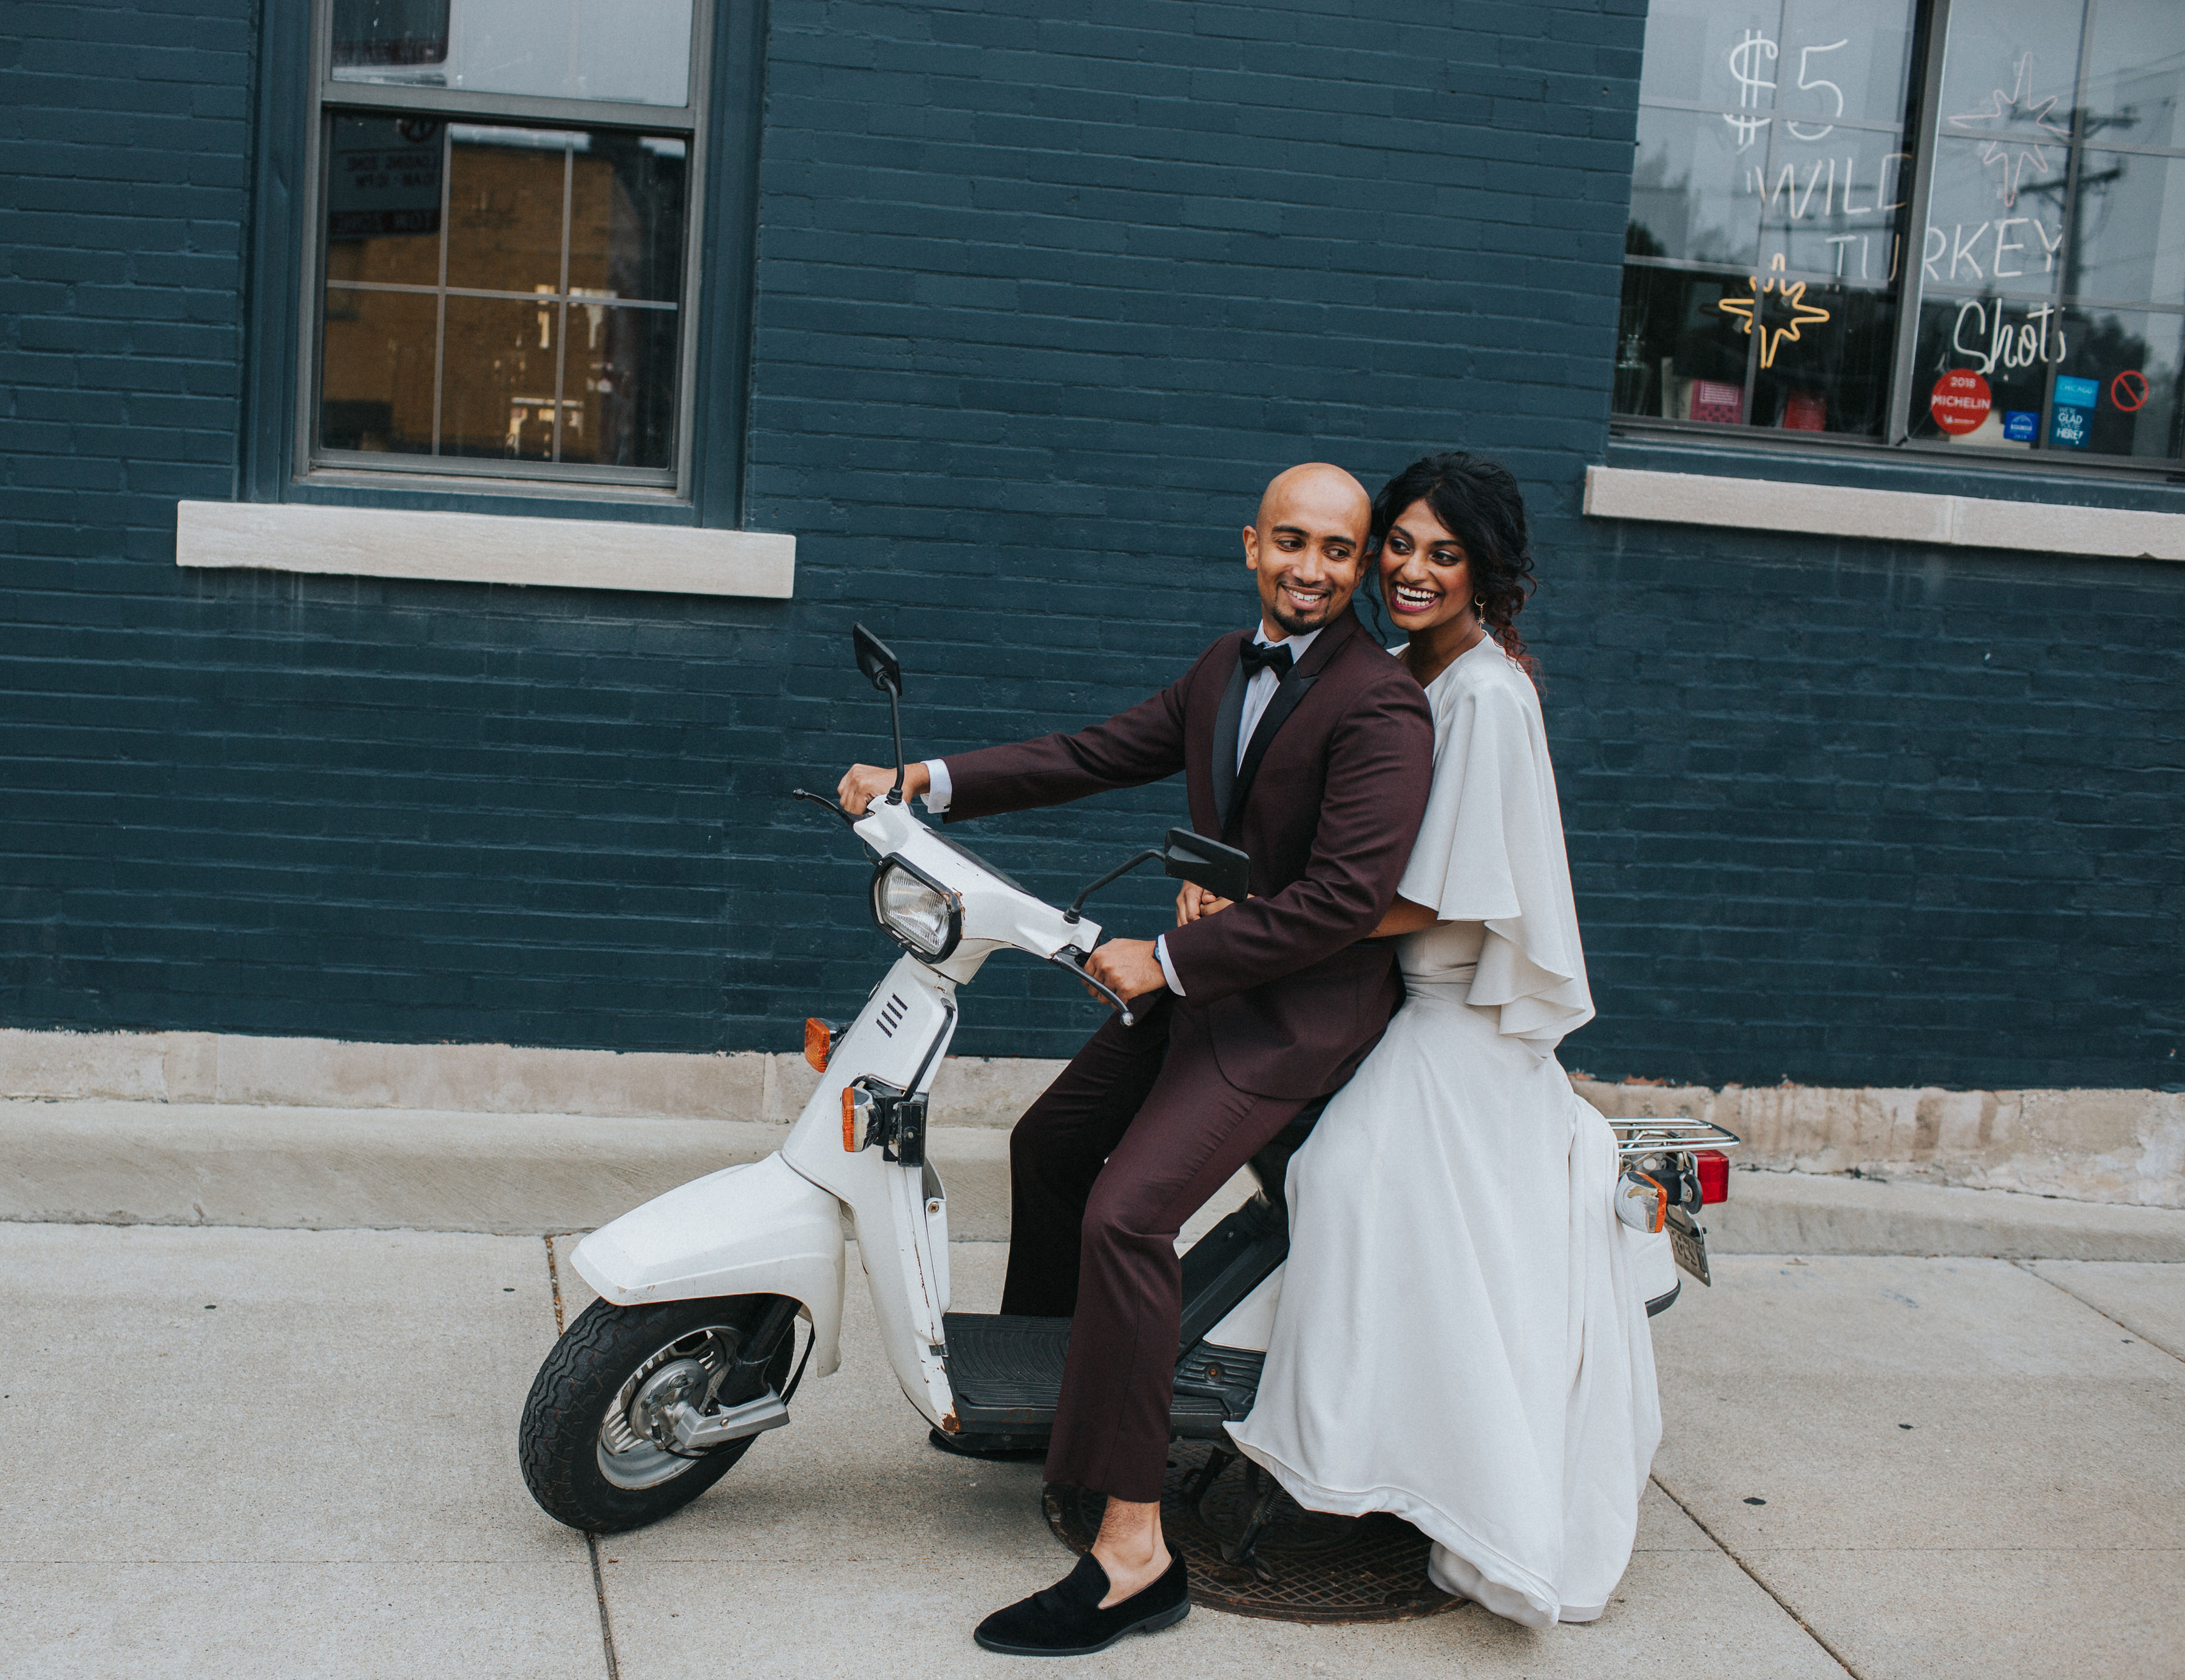 Warm Colorful Retro Mod Chicago Wedding Inspiration at The Duck Inn (35)